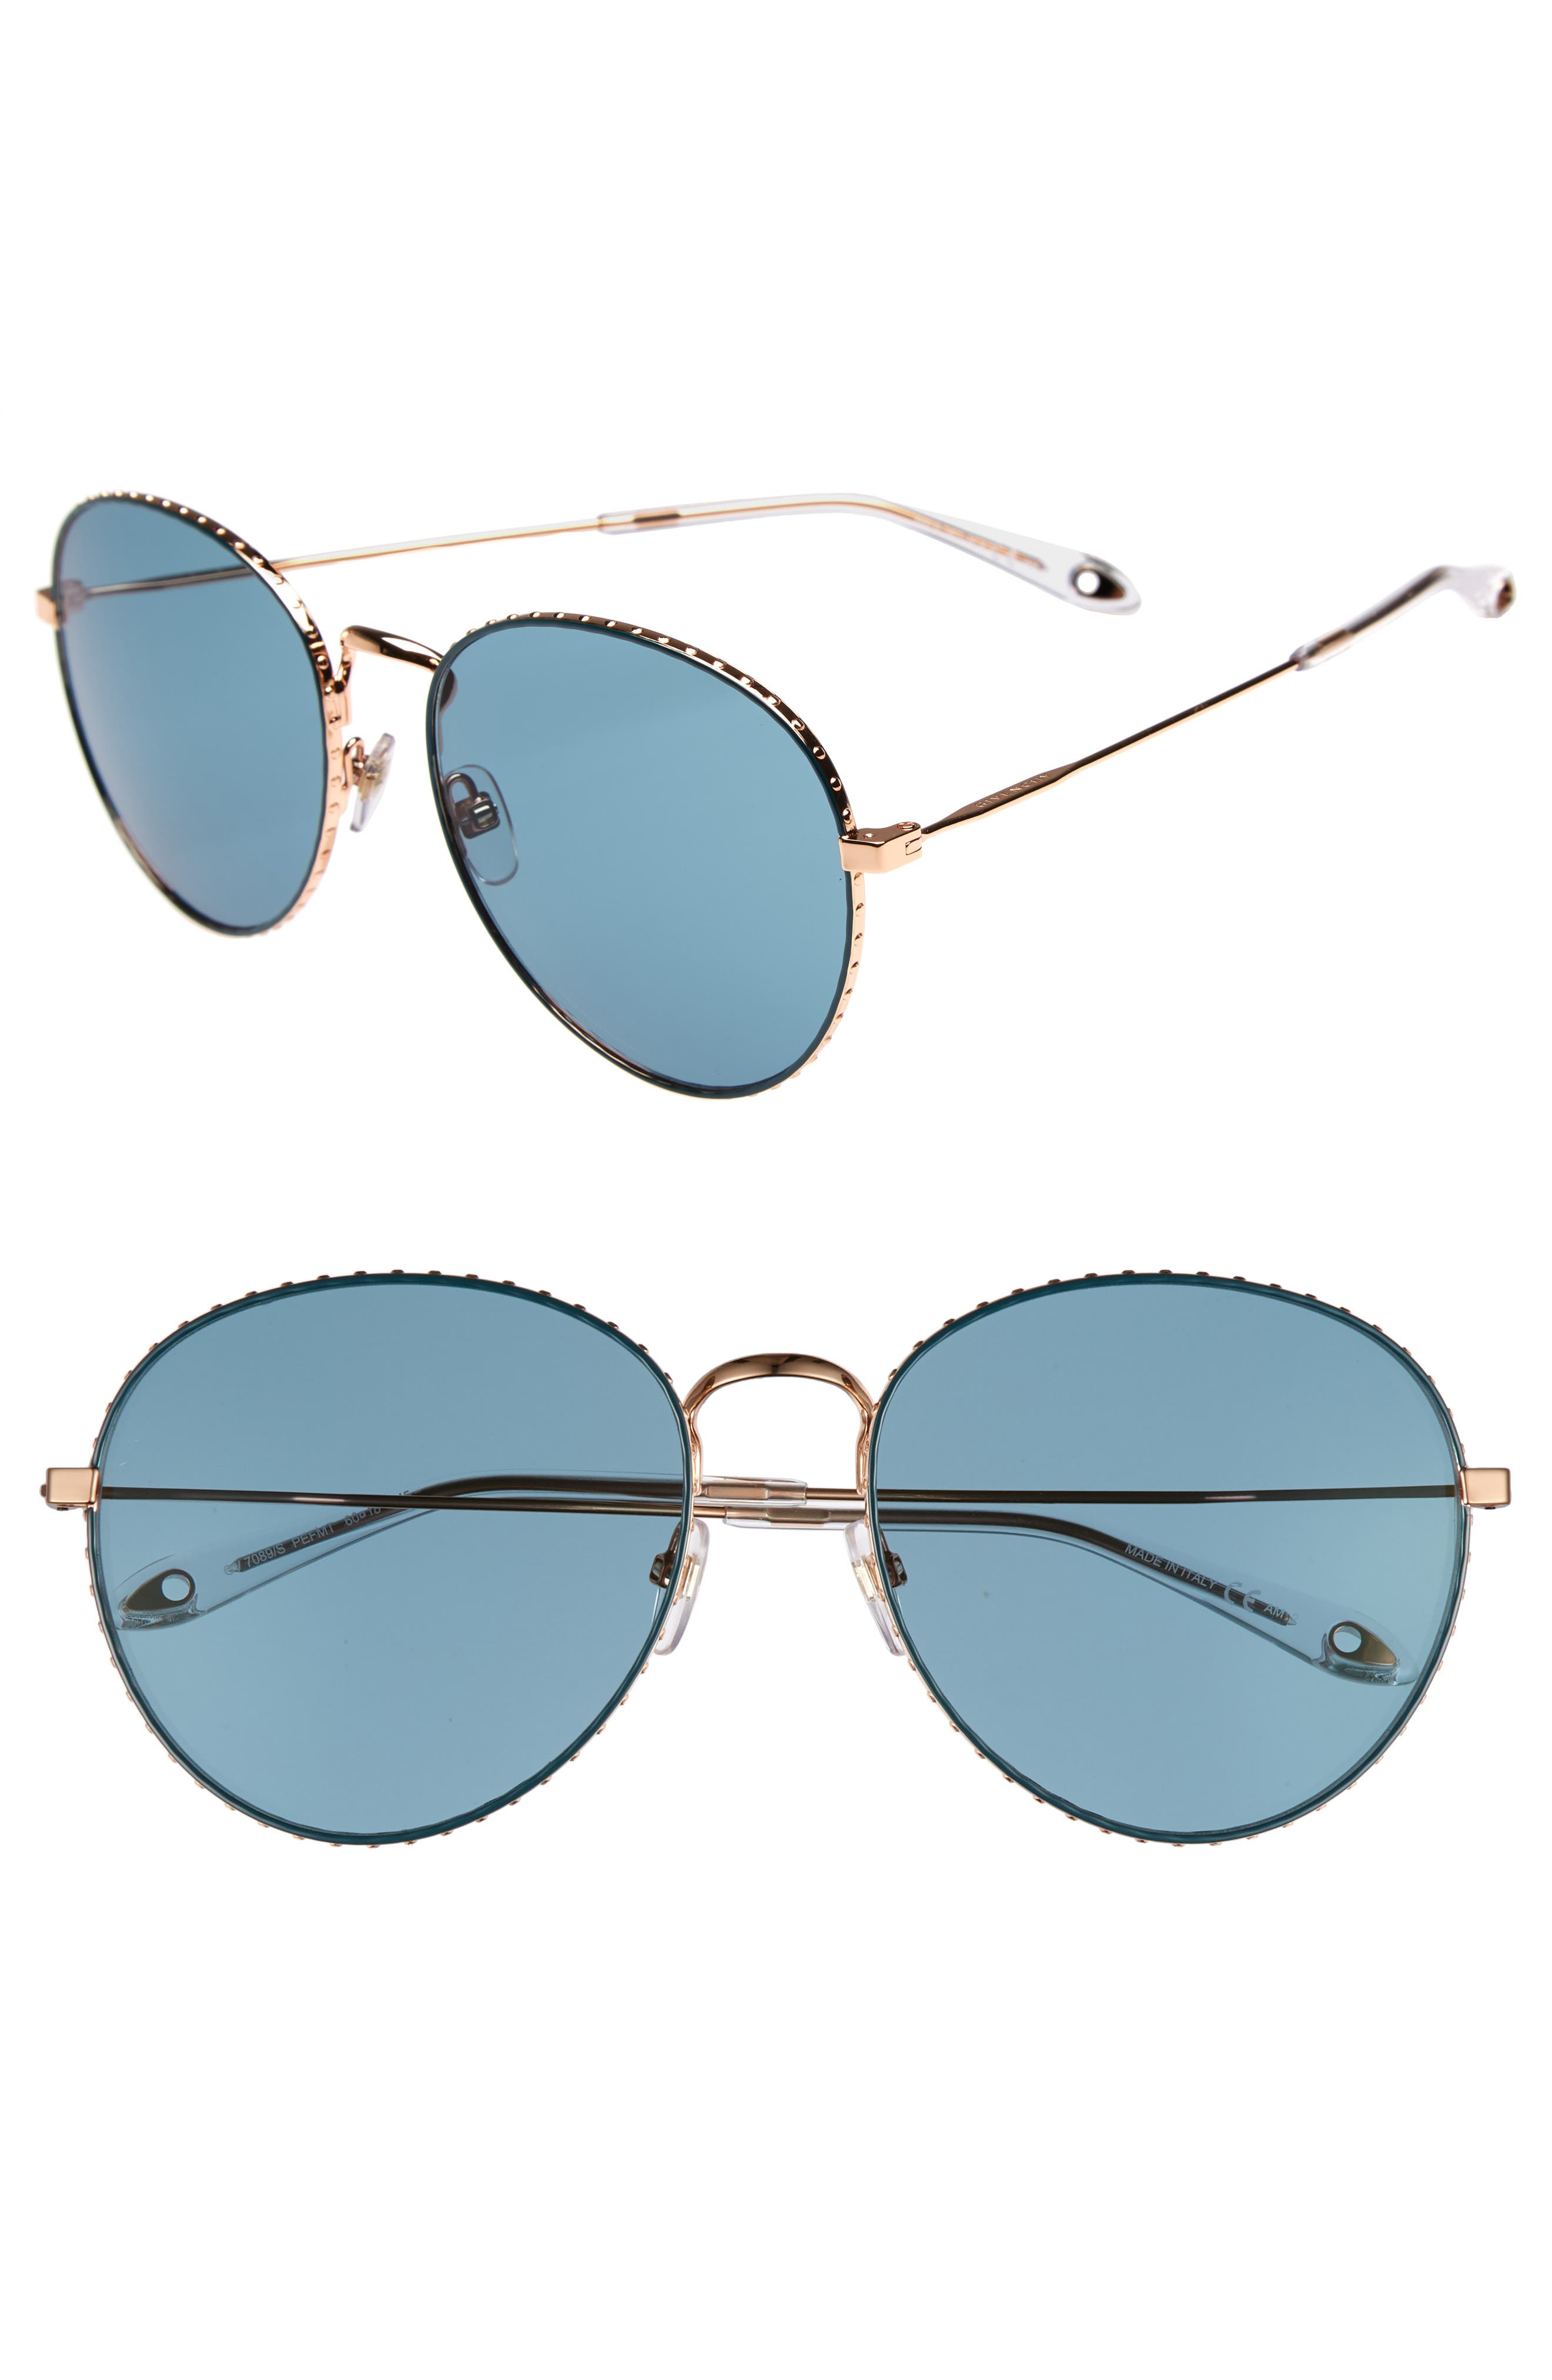 60mm Round Metal Sunglasses,                         Main,                         color, Gold/ Green